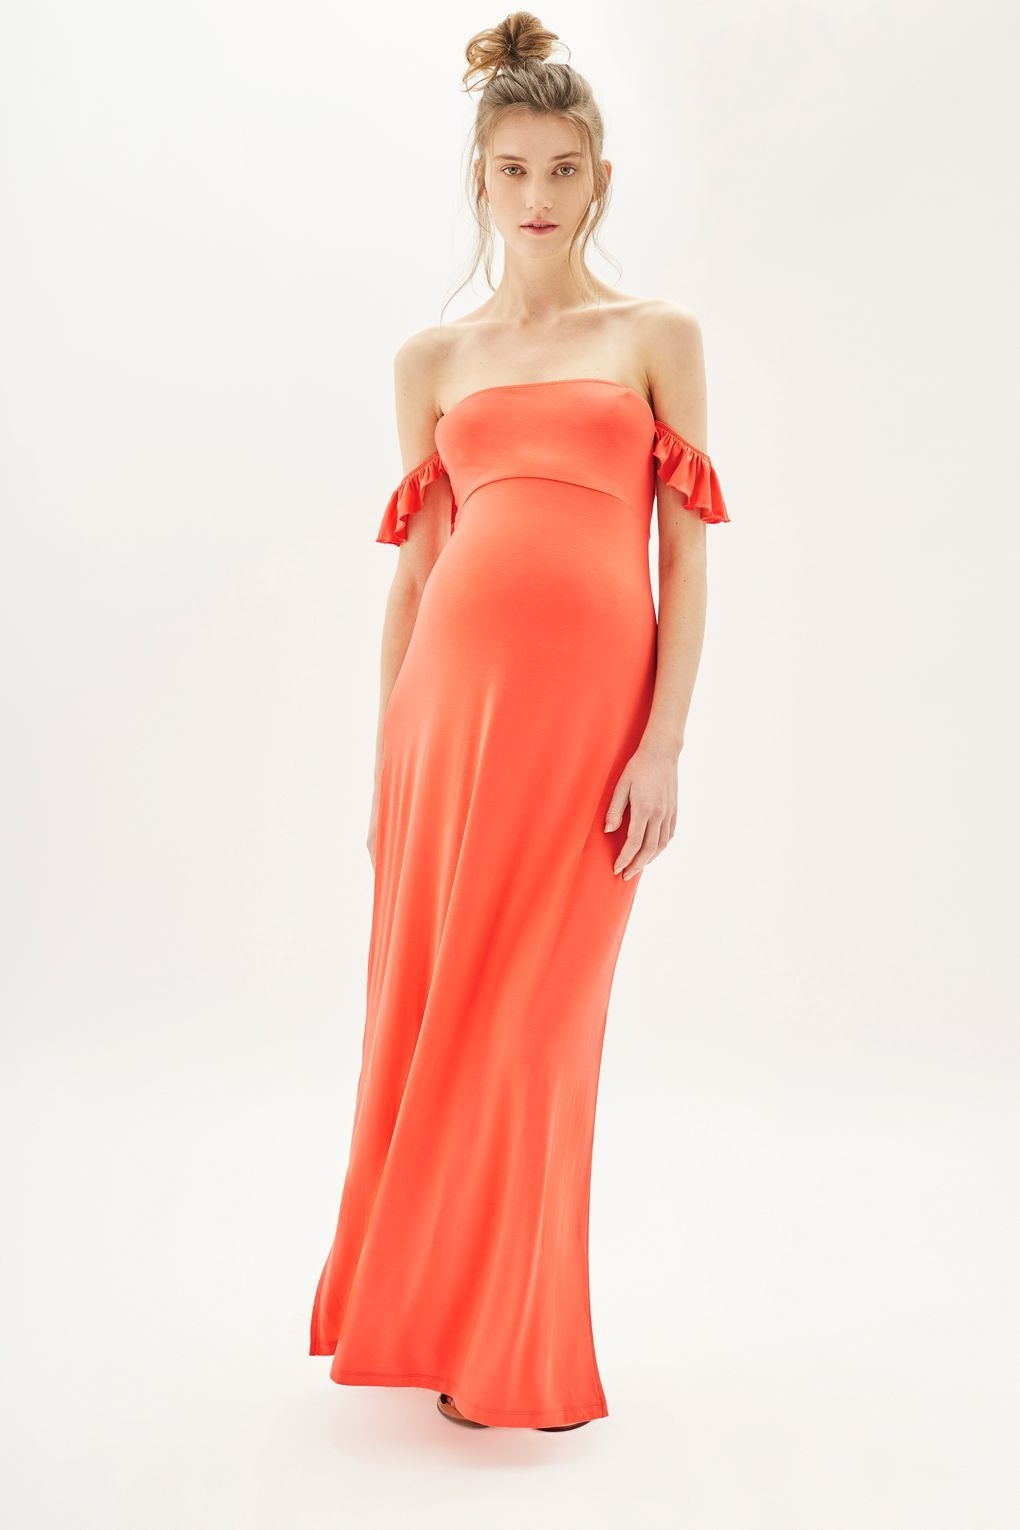 Orange Maternity Dresses